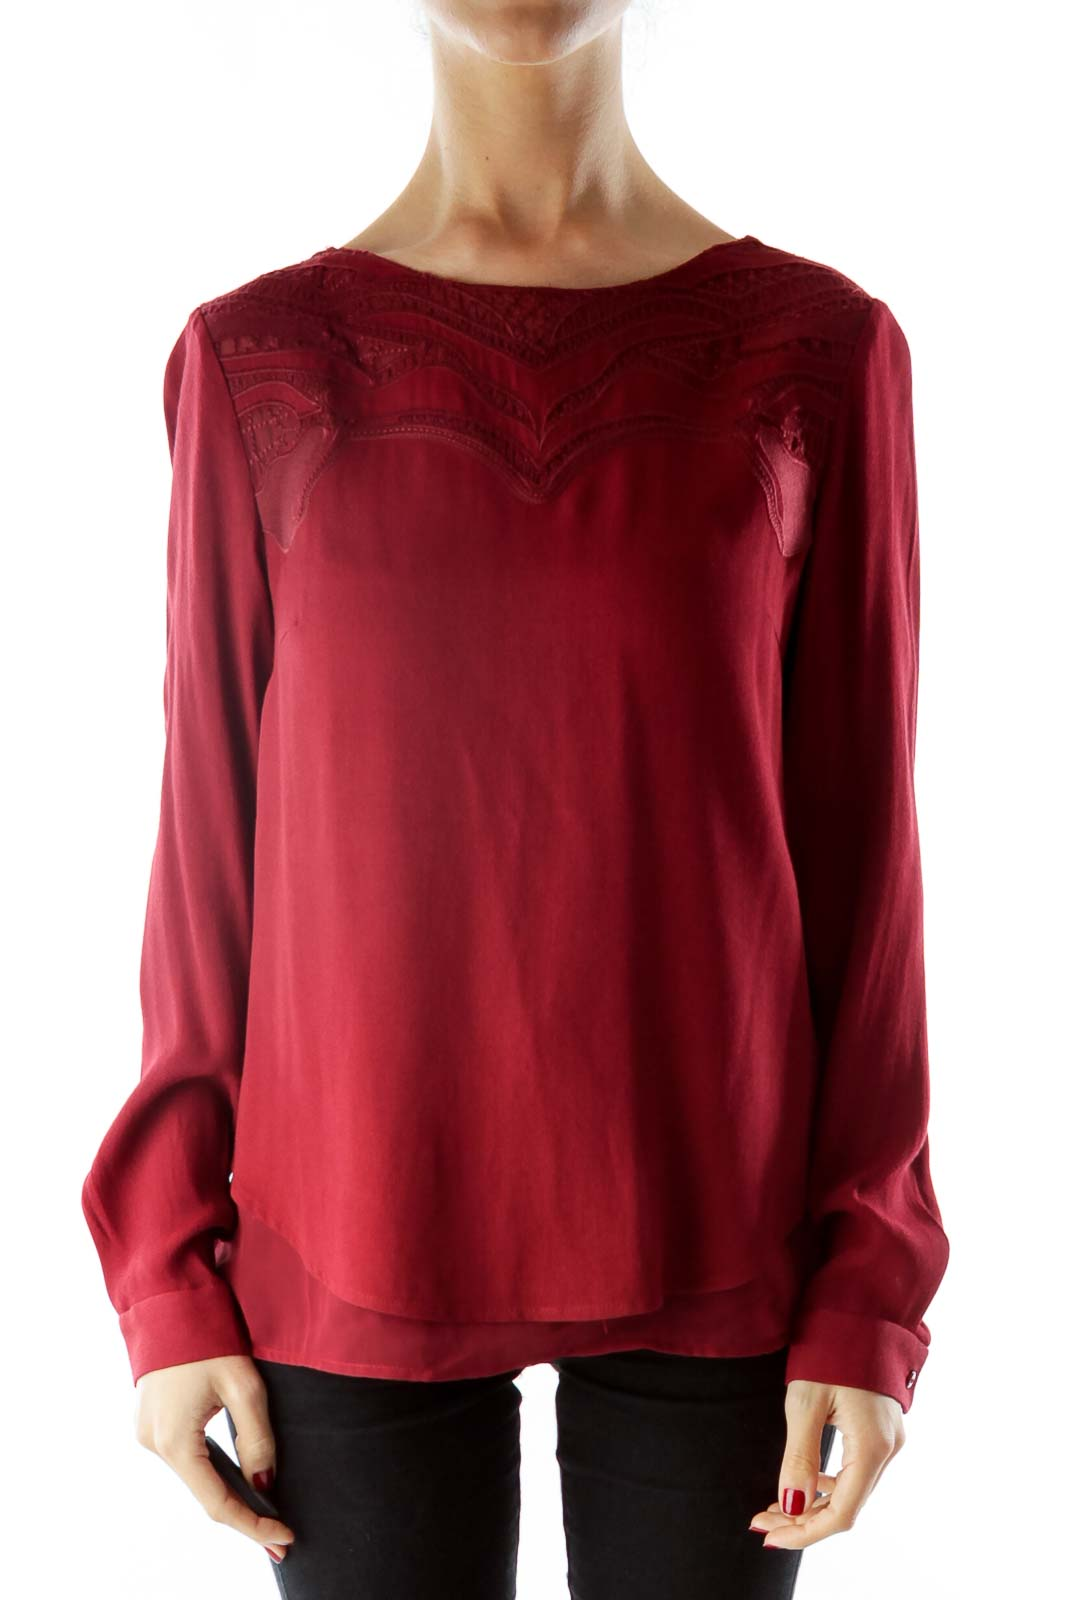 Embroidered Burgundy long sleeve top Front